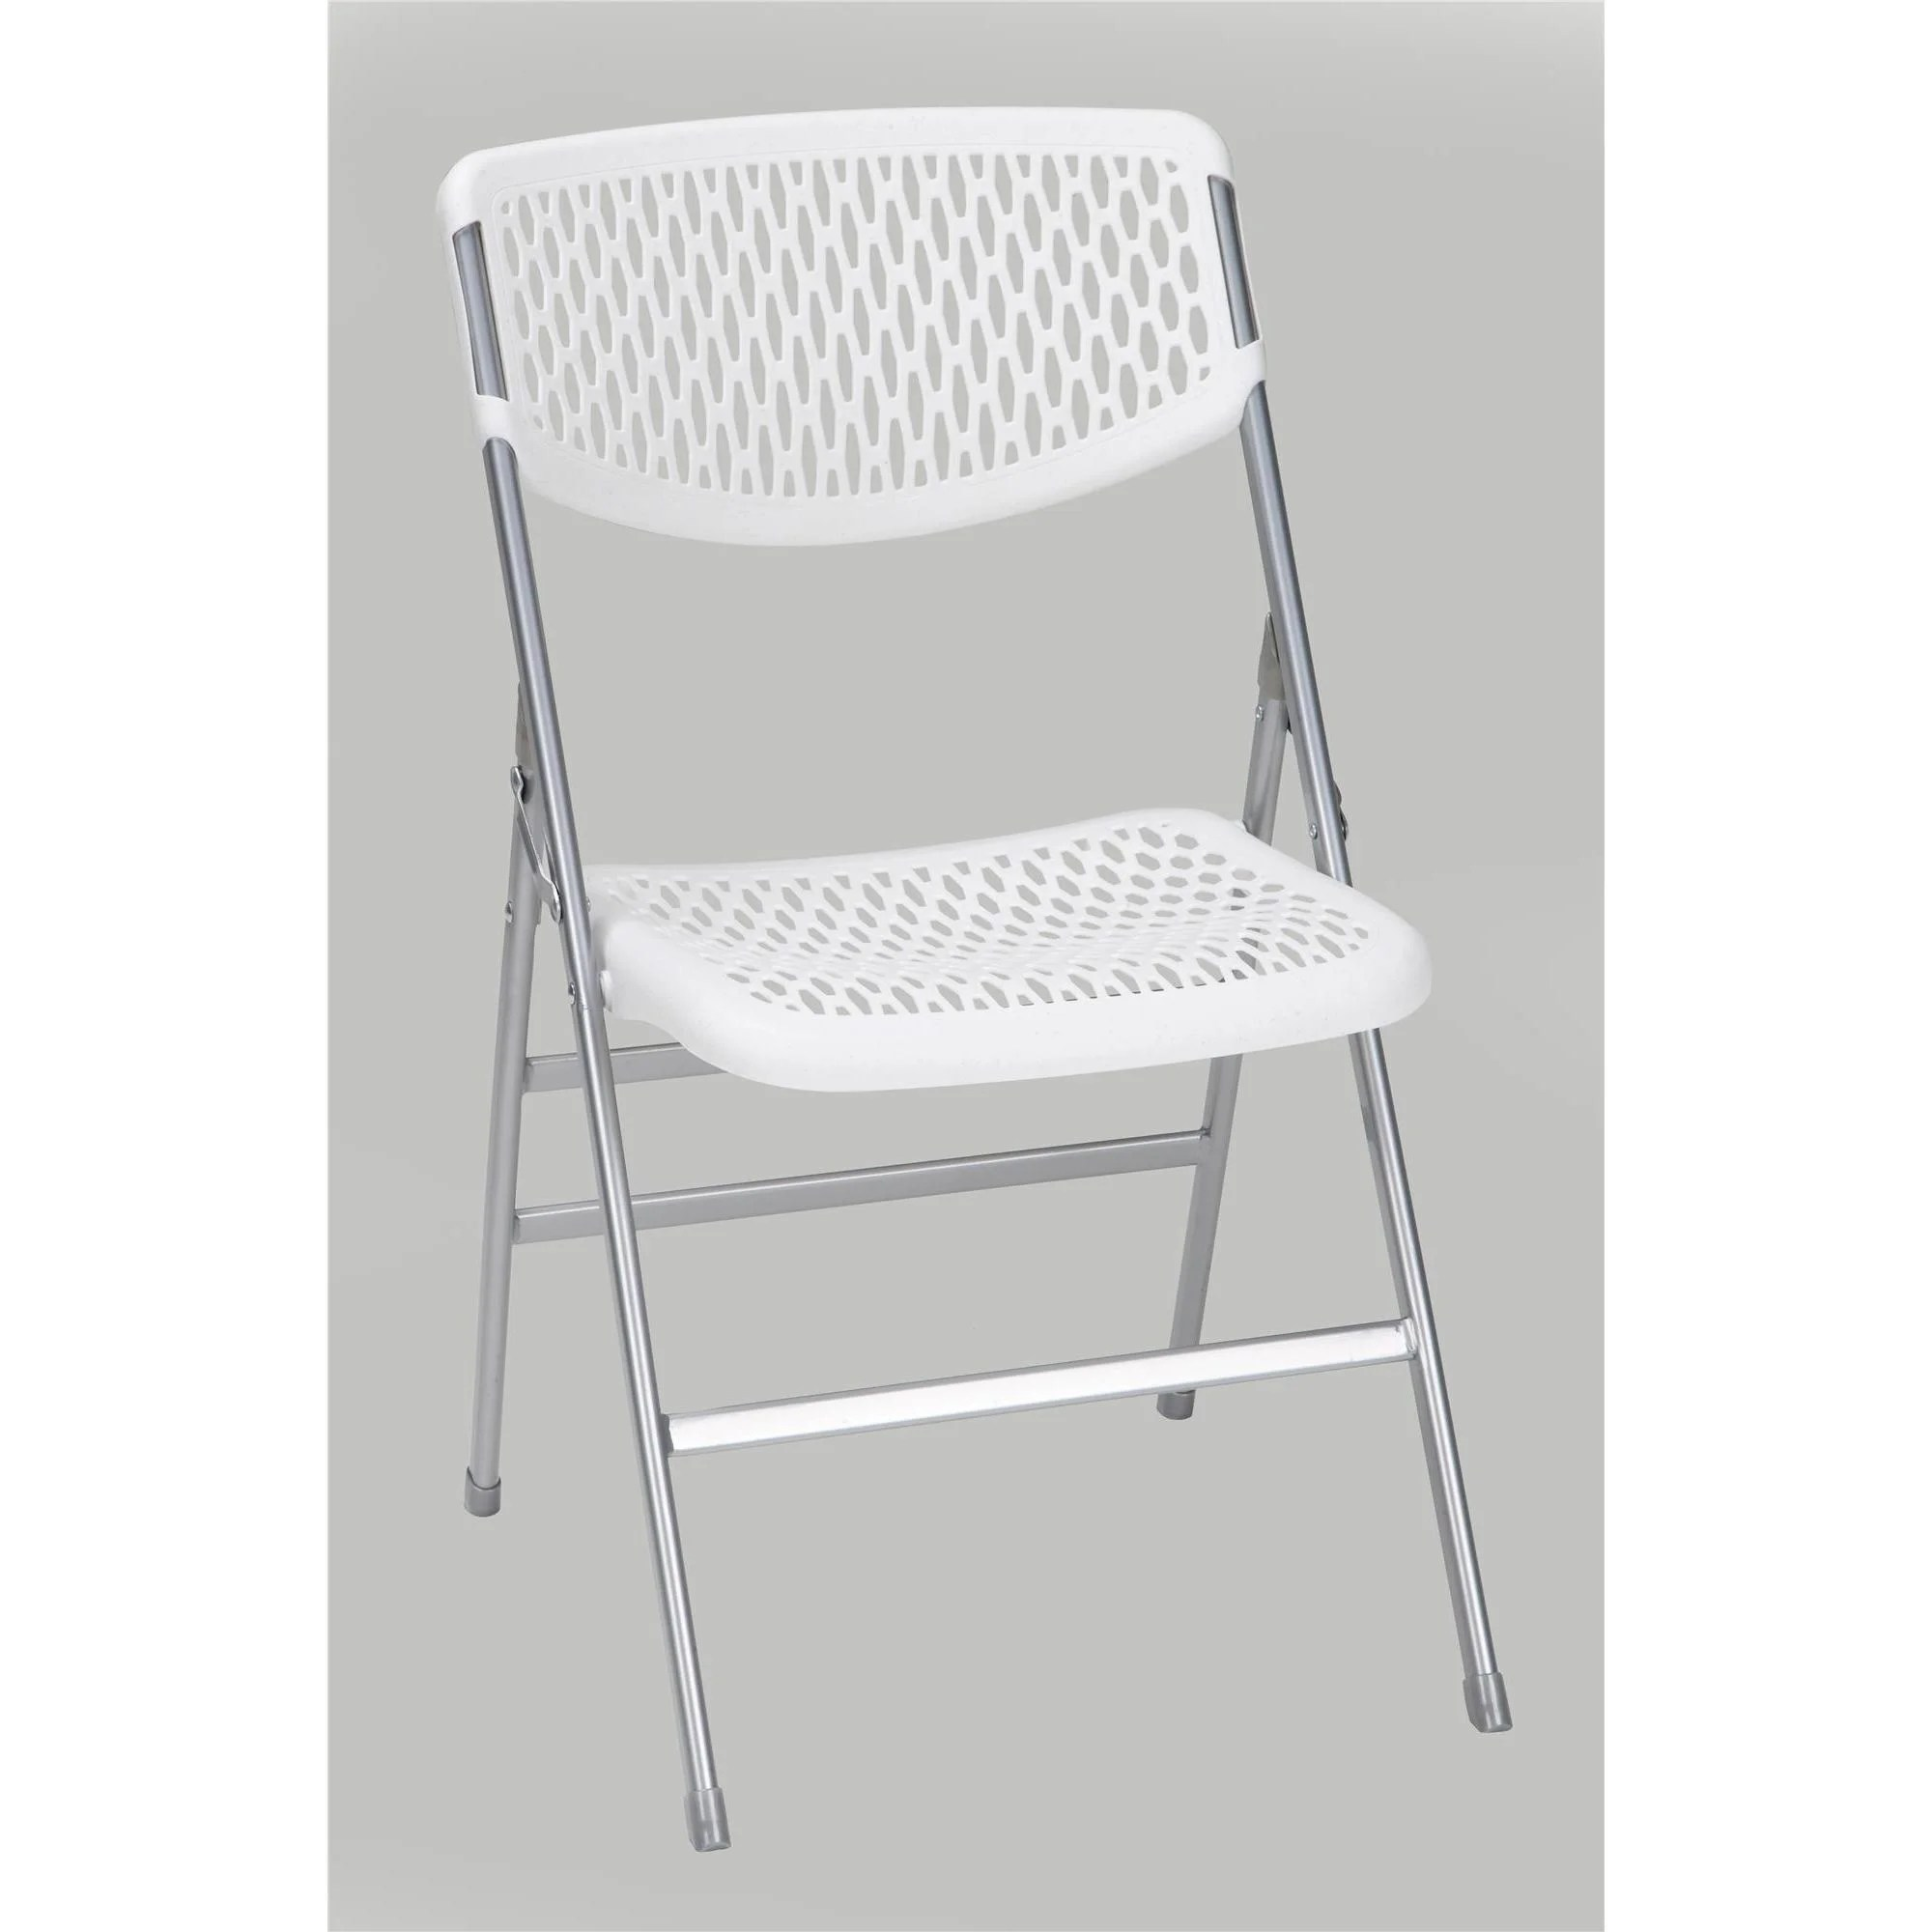 Cosco Folding Chair Cosco Commercial Resin Mesh Folding Chair Set Of 4